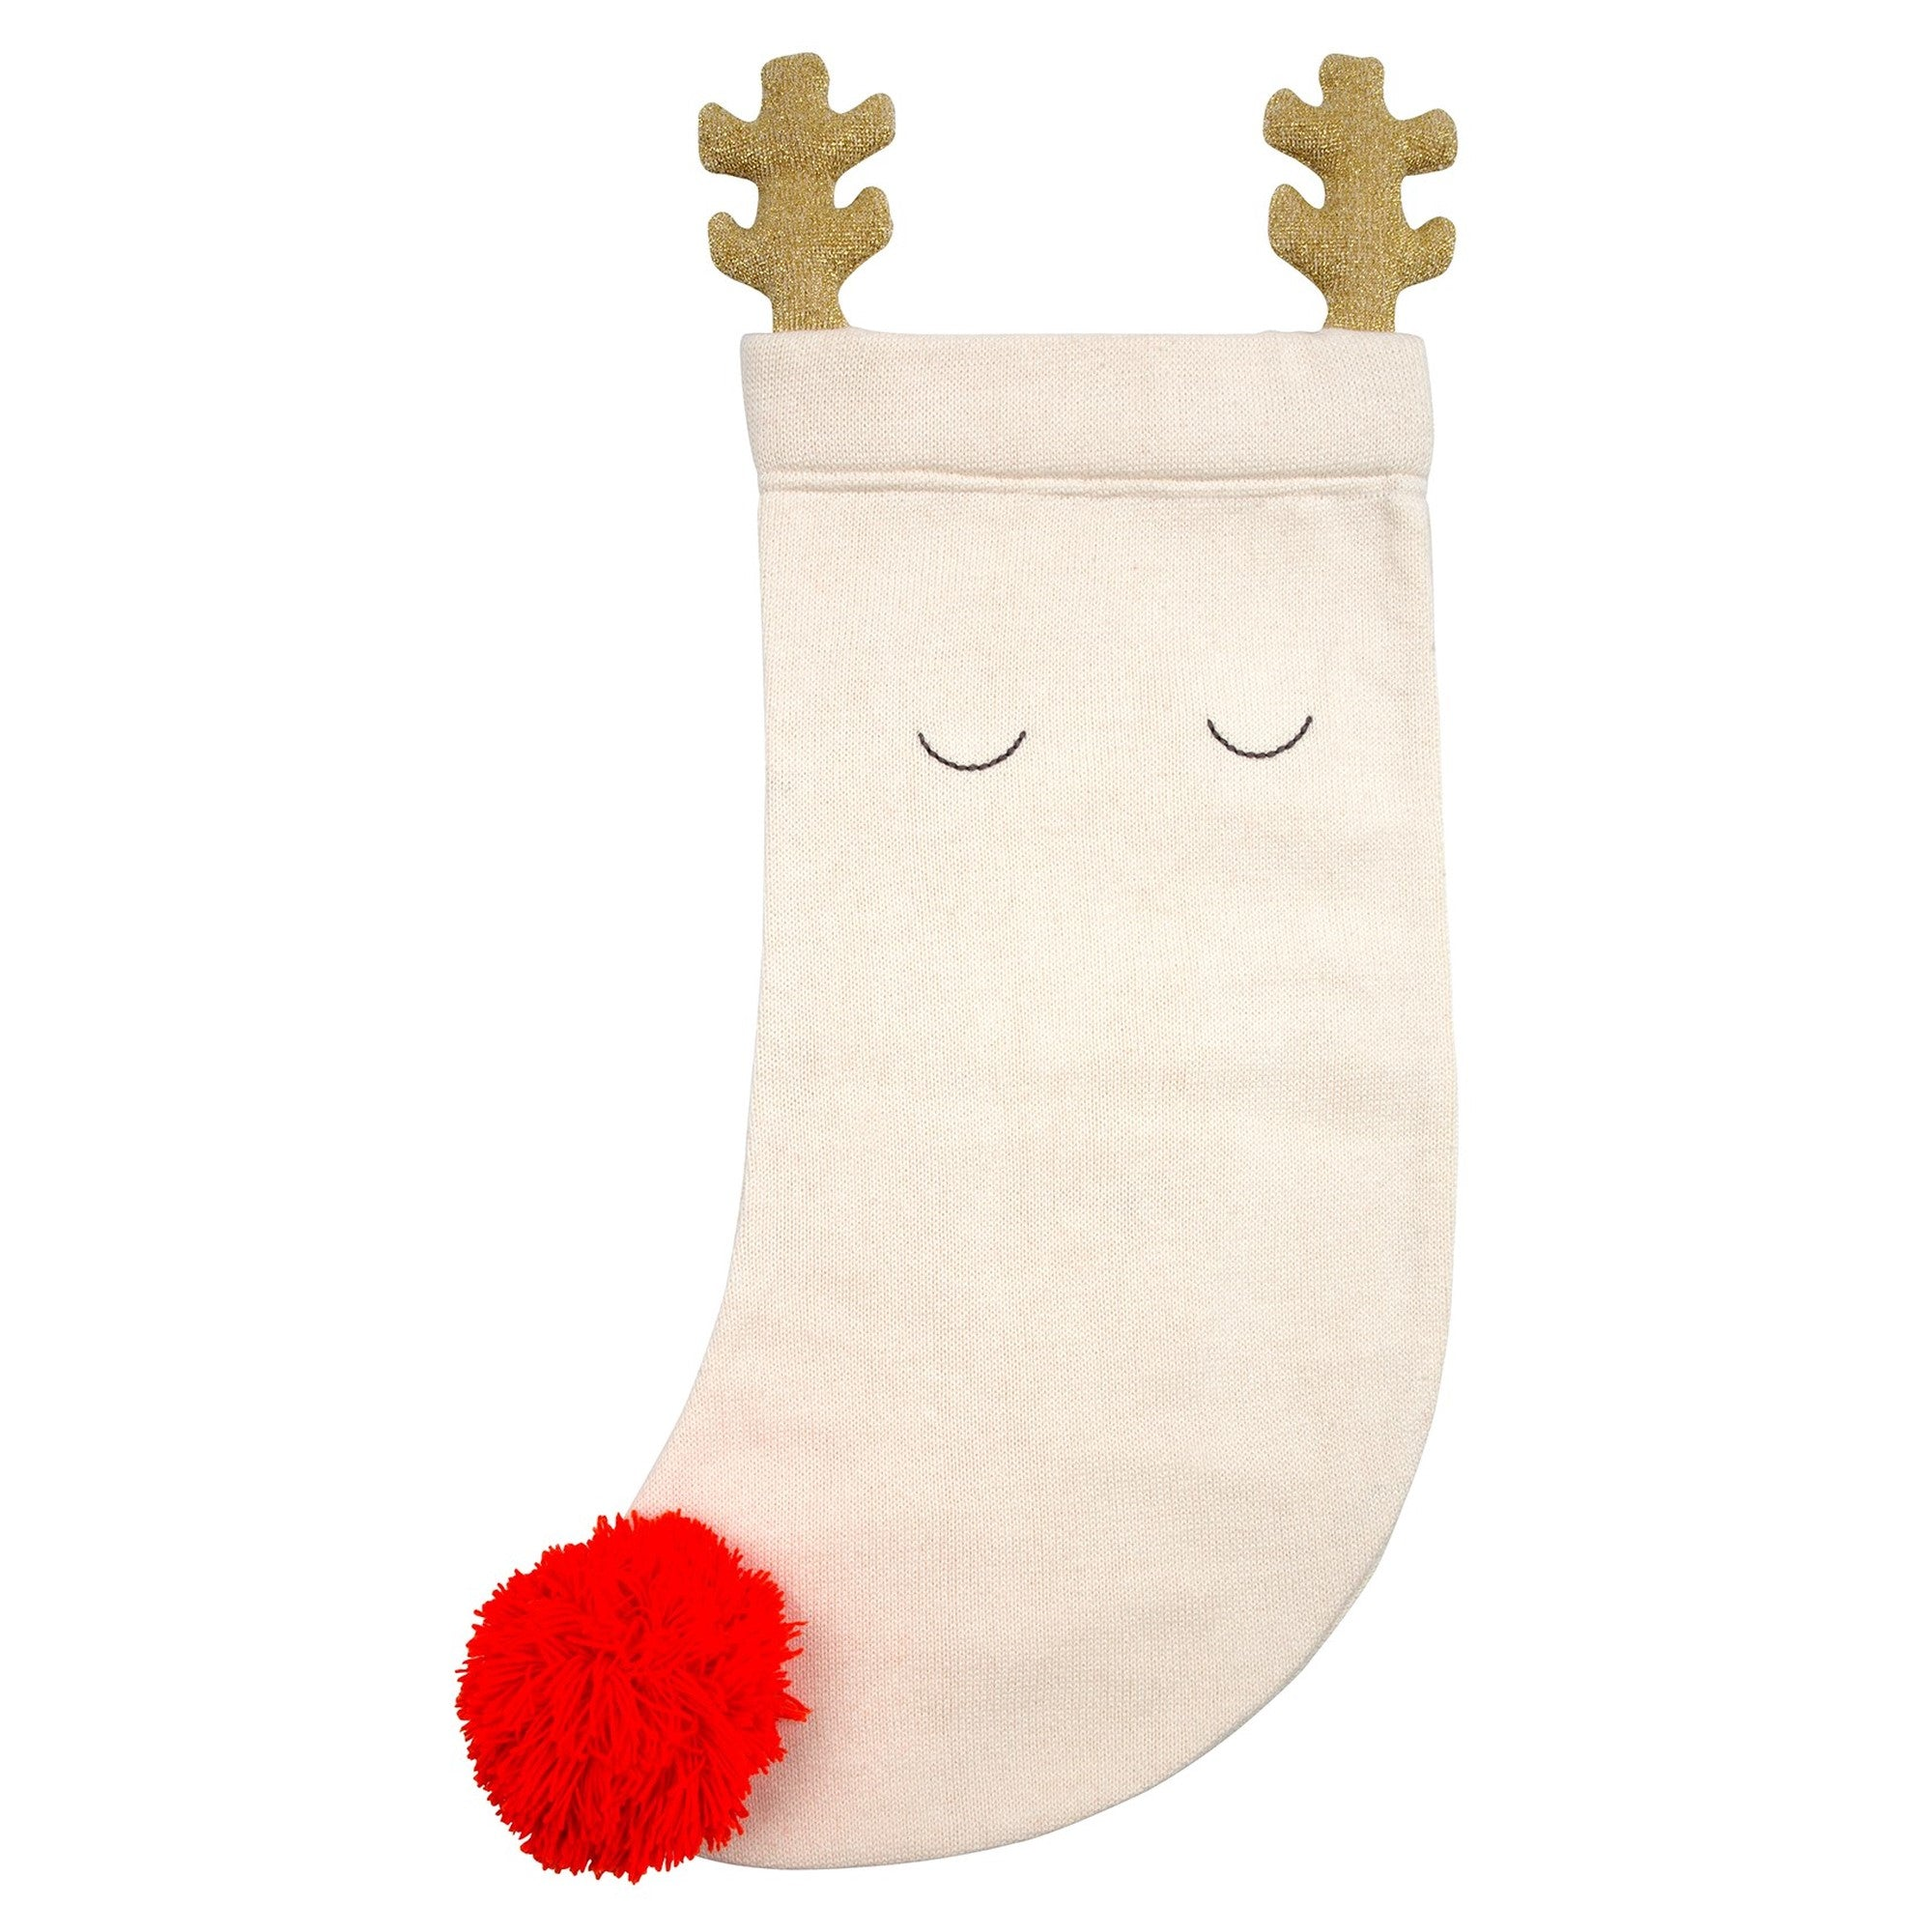 Meri Meri Knitted Reindeer Stocking | Le Petite Putti Christmas Canada